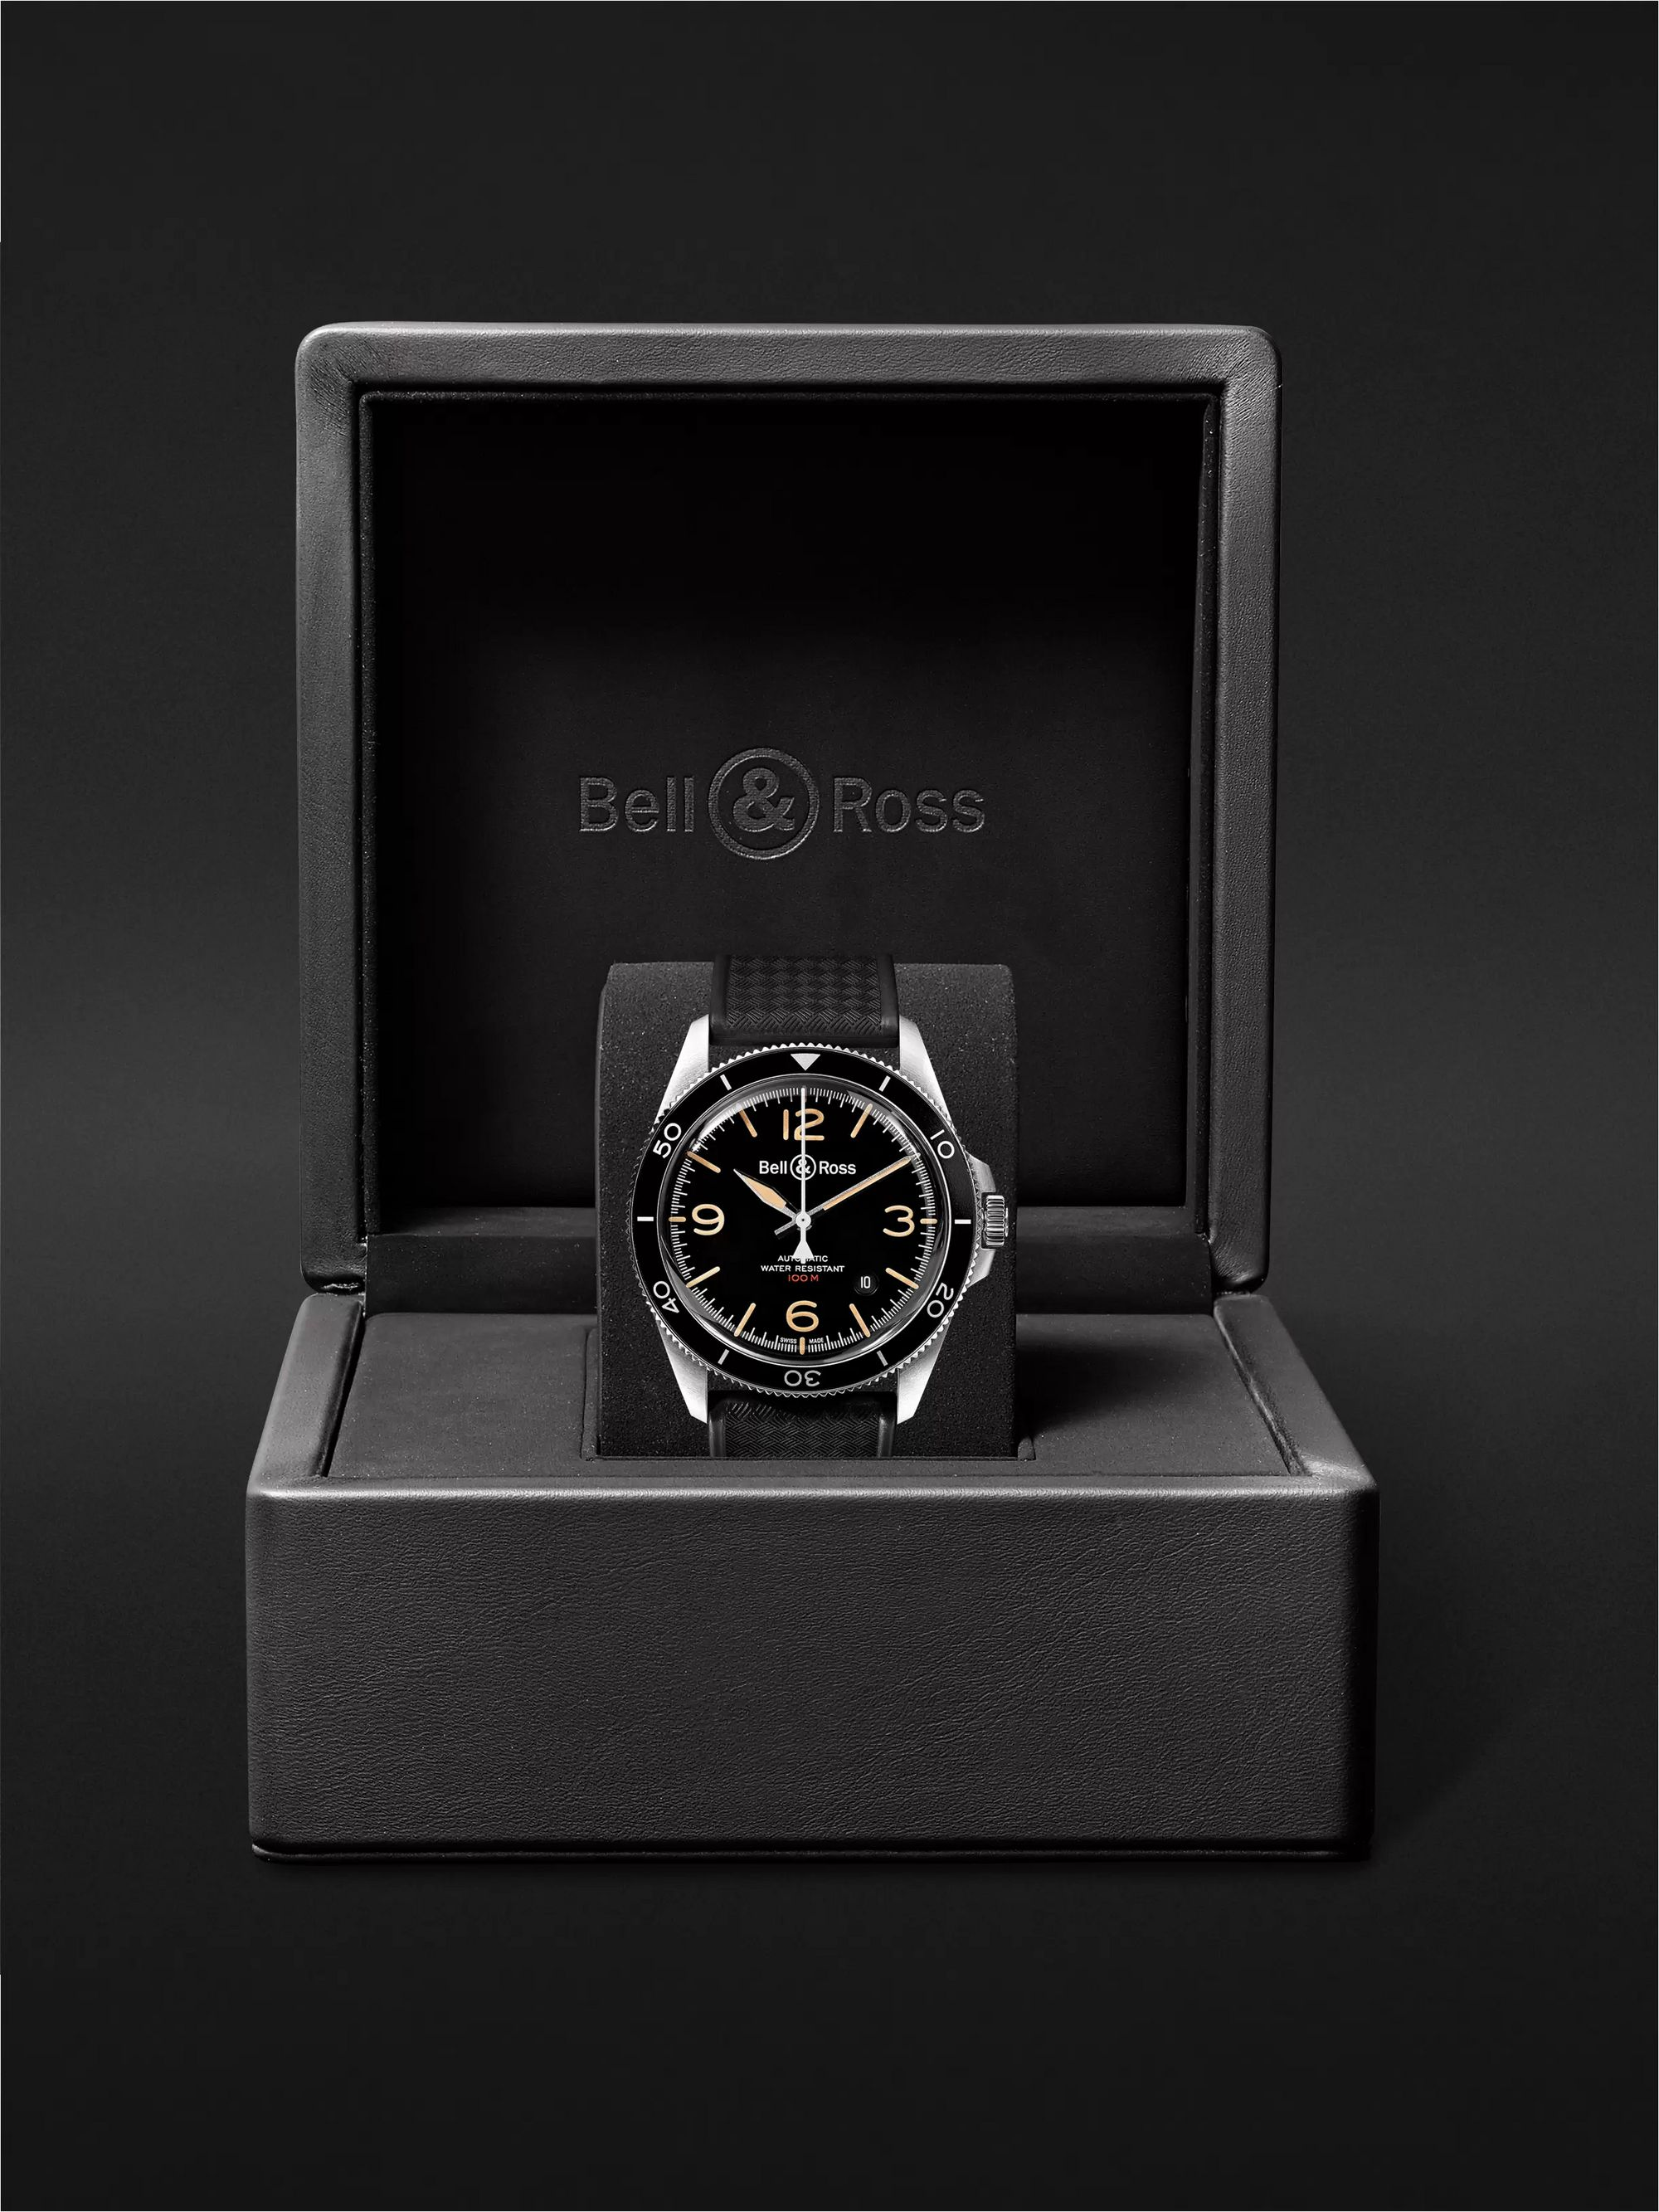 Bell & Ross BR V2-92 Steel Heritage Automatic 41mm Stainless Steel and Rubber Watch, Ref. No. BRV292-HER-ST/SRB